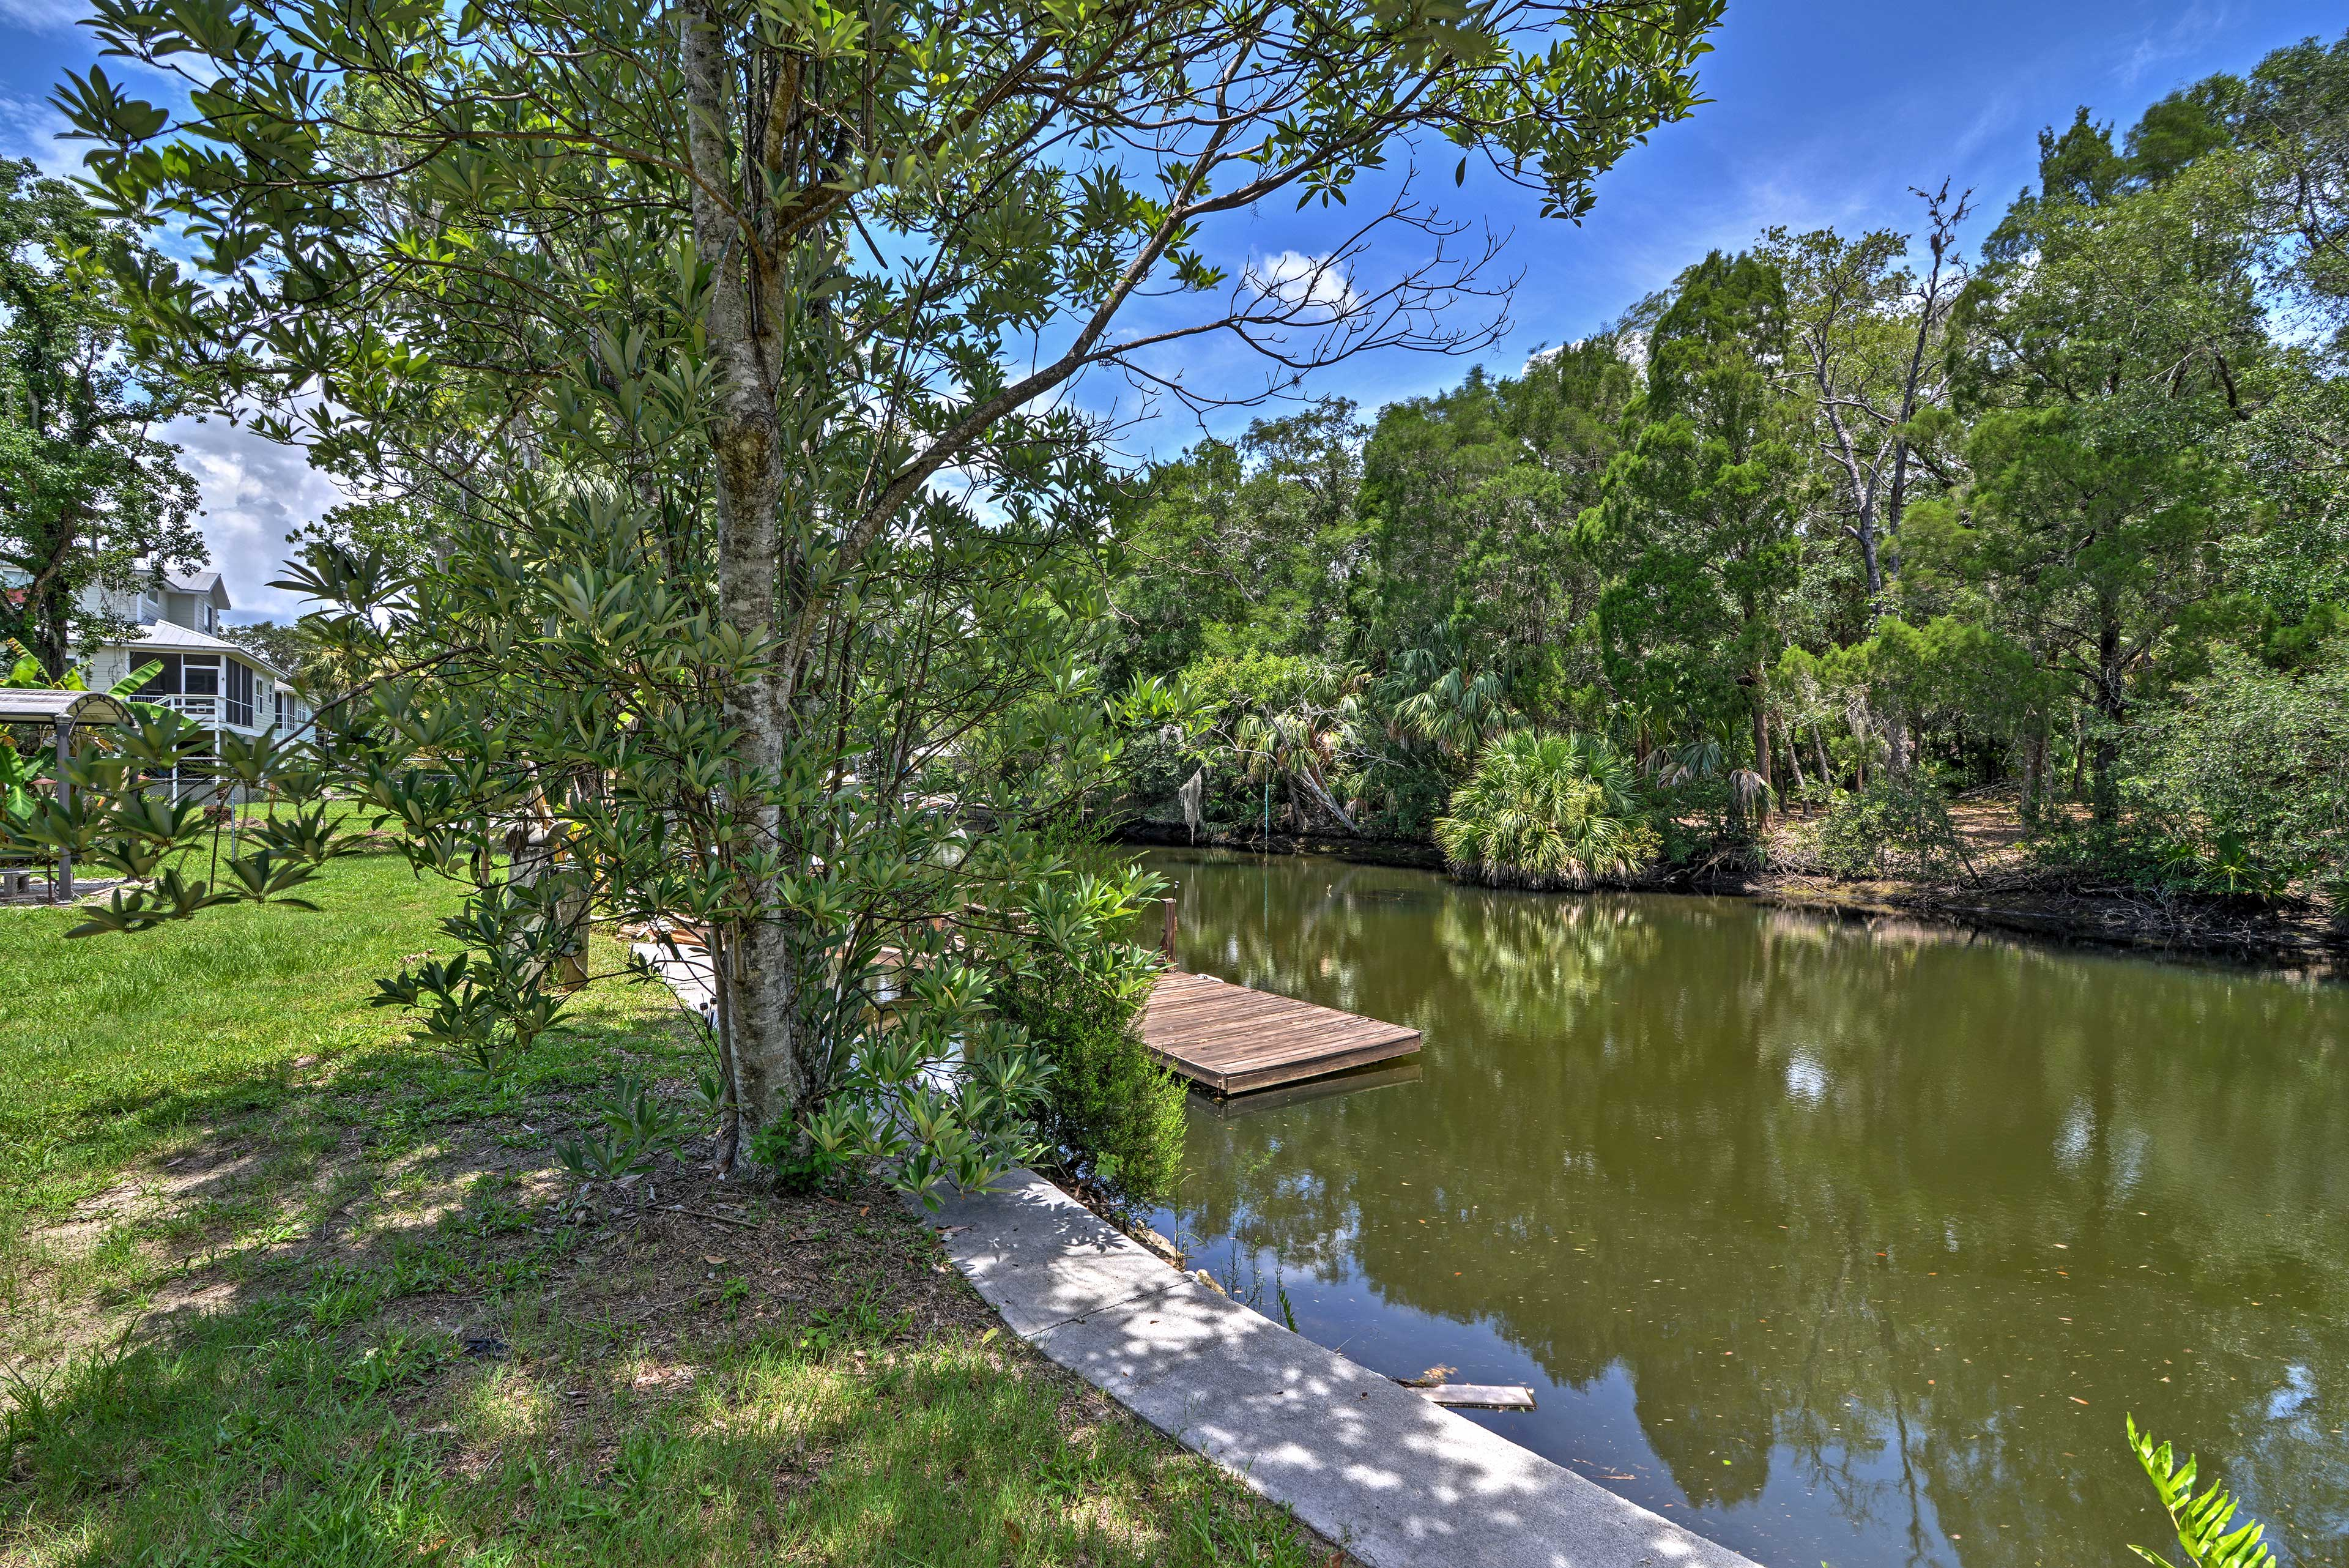 Located on a canal, you'll have access to boating, fishing, kayaking, and more.